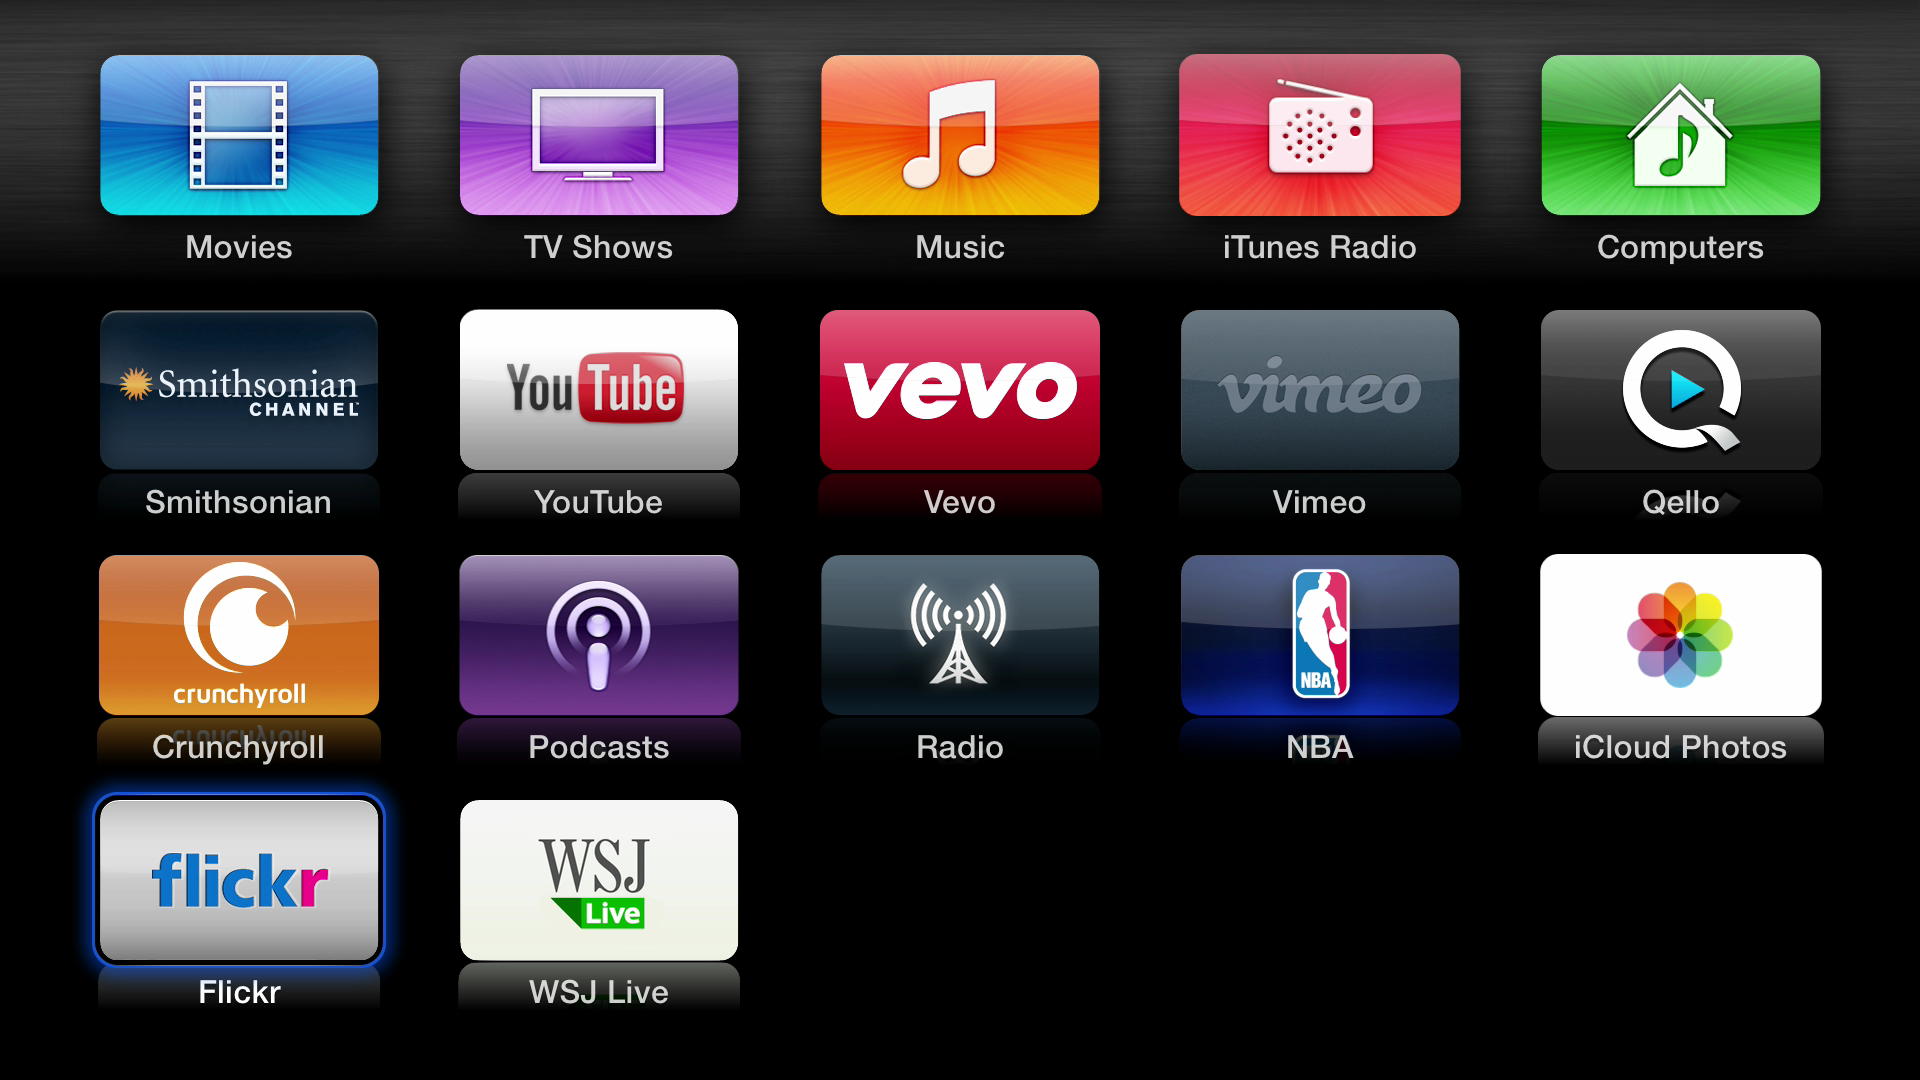 Figure 2: The second page of Apple TV apps. Apart from those in the top row, you can move an icon around by selecting it and pressing Select until the icon begins to shake. Use the directional controls to move the icon, and then press Select again to finish.